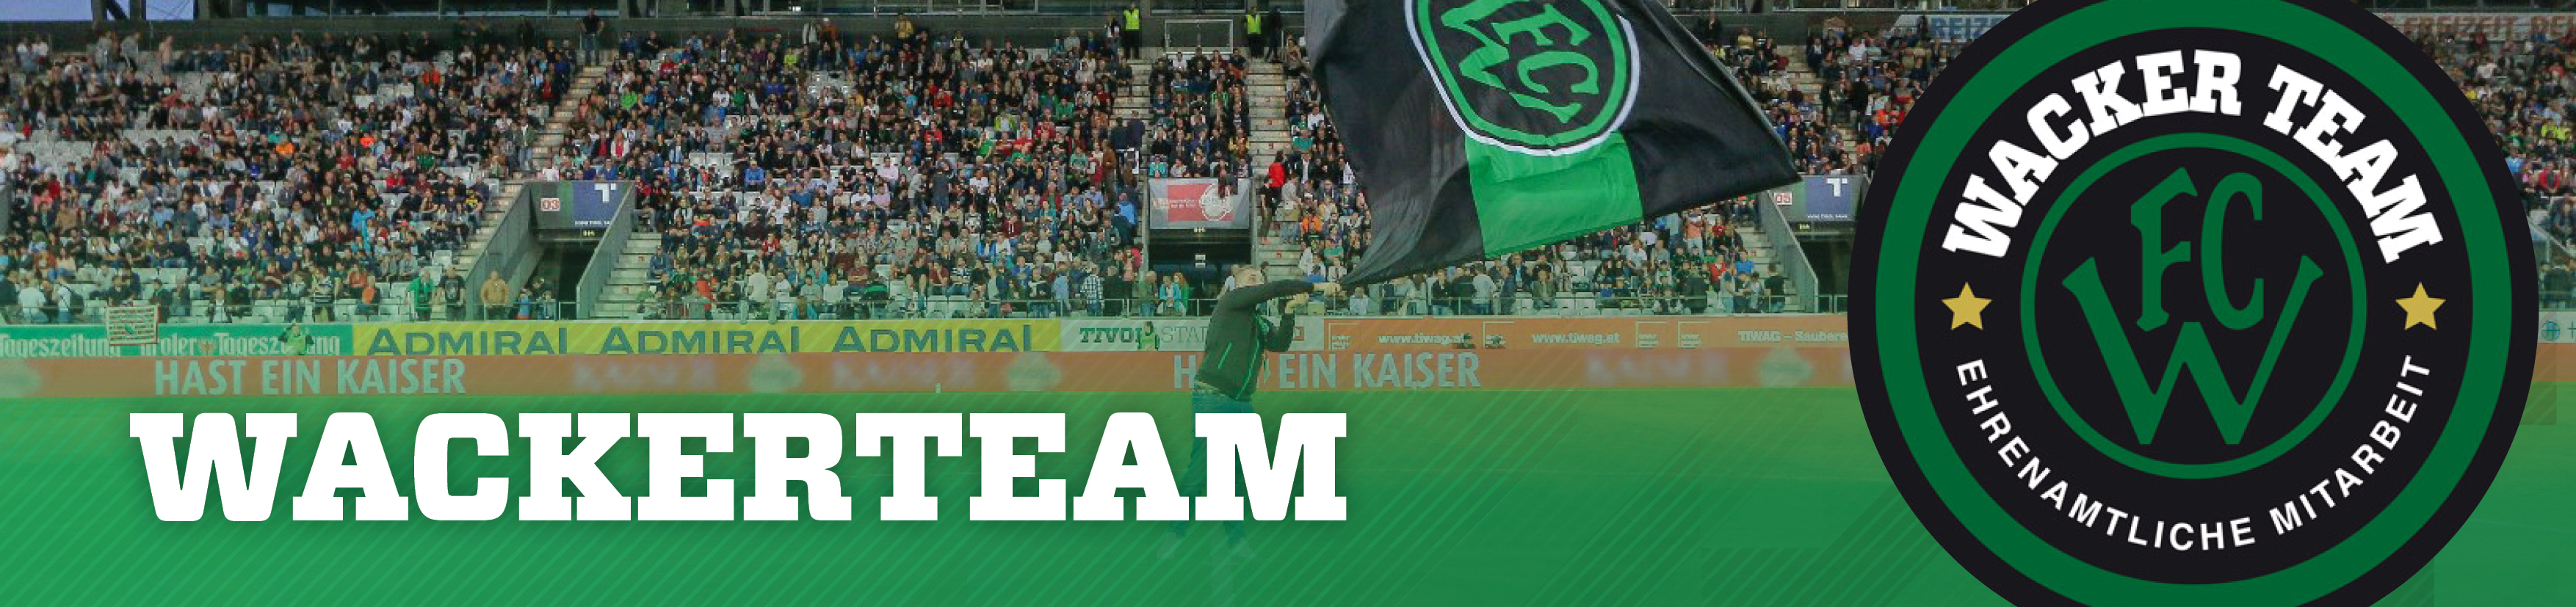 banner wackerteam